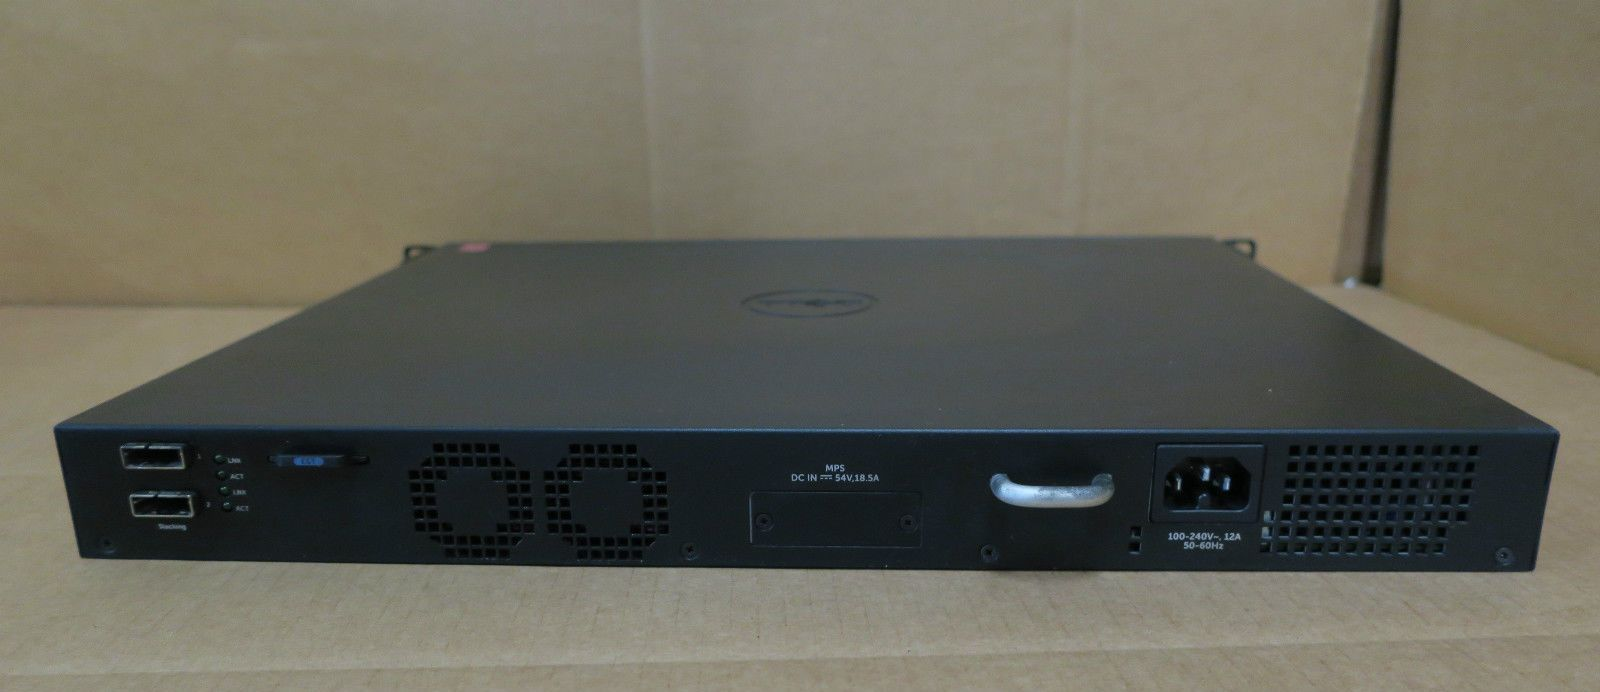 Dell Networking N2048p 48 Port L2 Poe 1gbe 2x10gbe Sfp